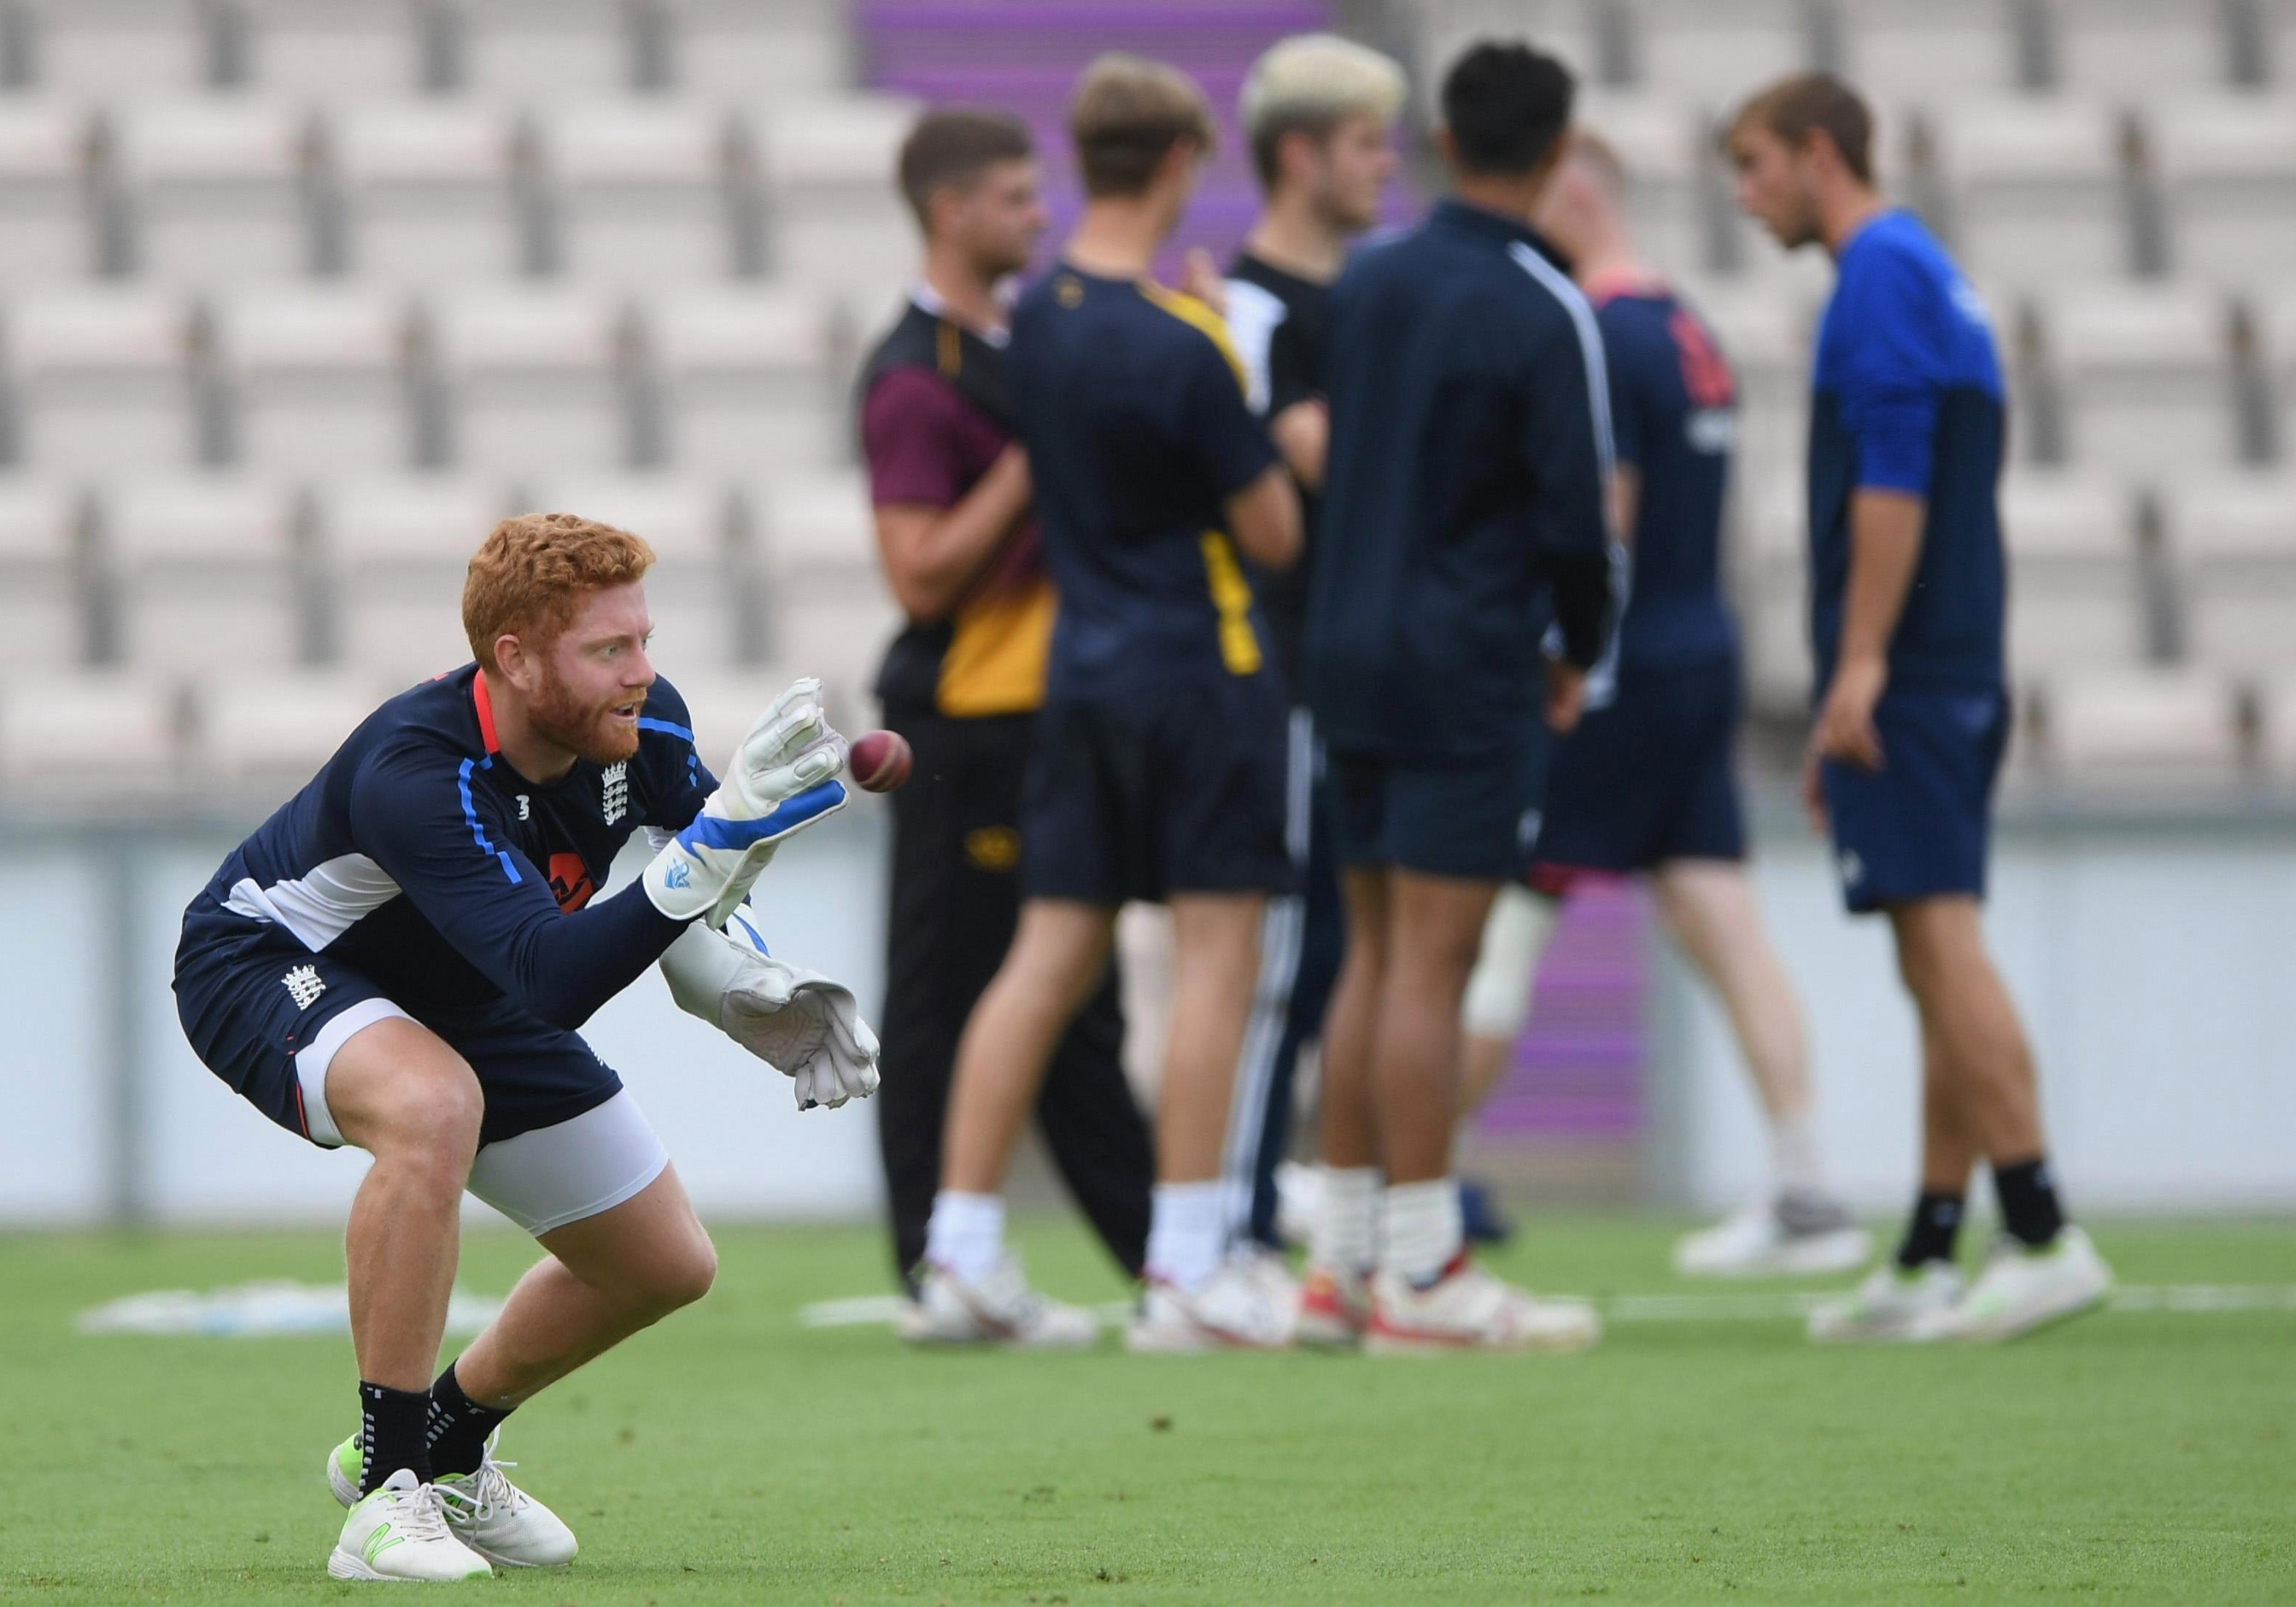 Bairstow practised with the gloves on during a training session on Tuesday